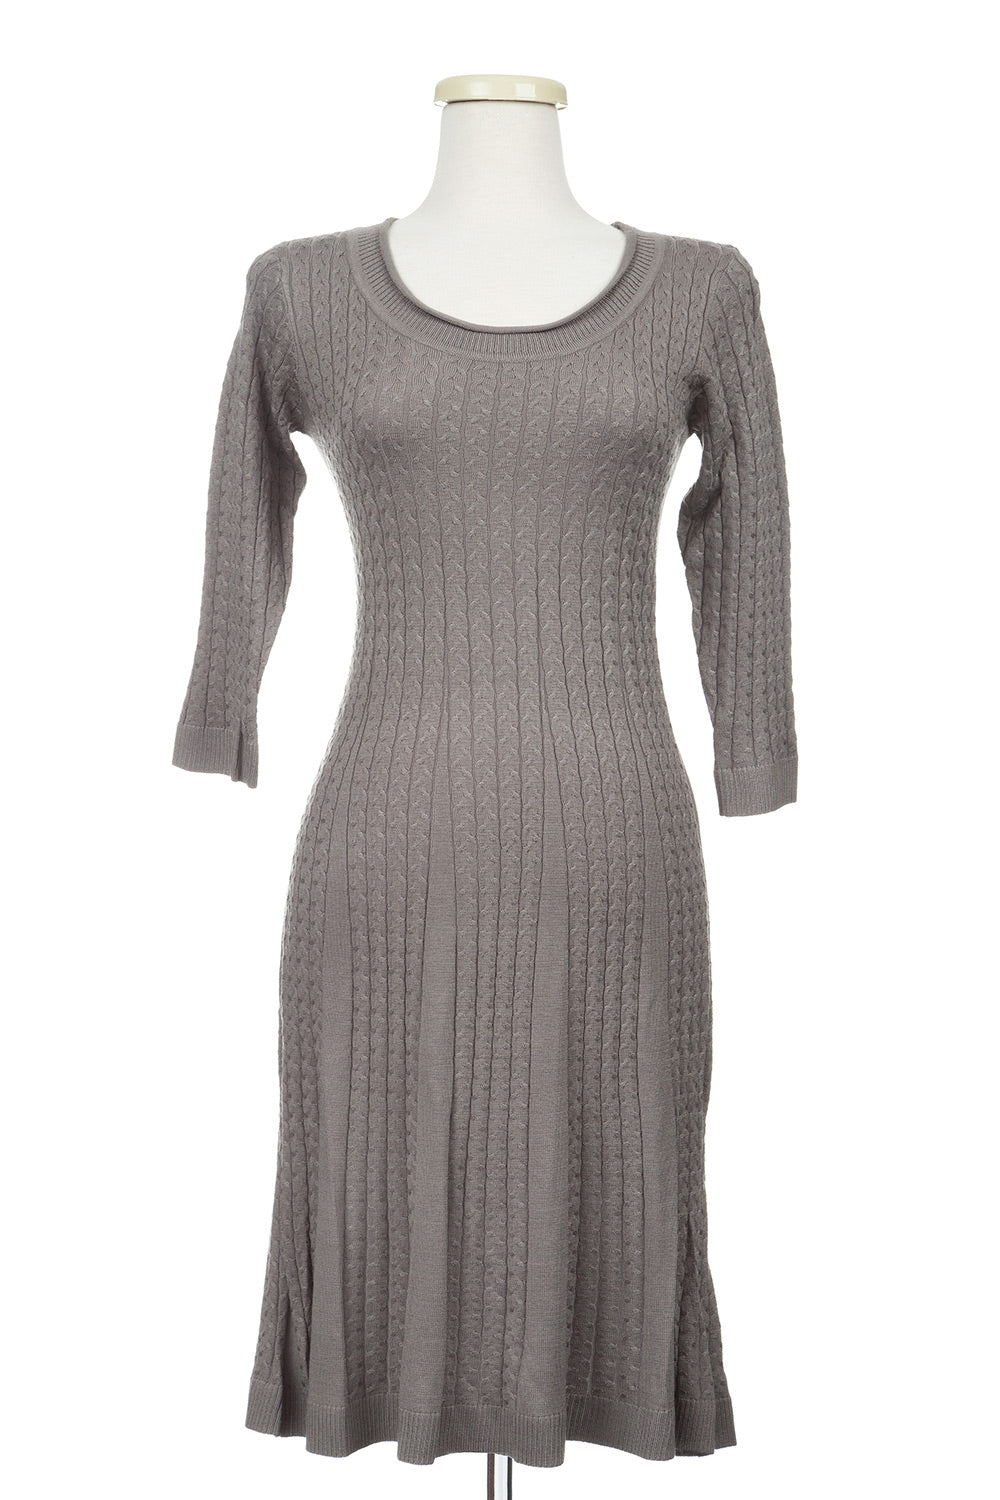 Type 2 Cable Knit Comfort Dress